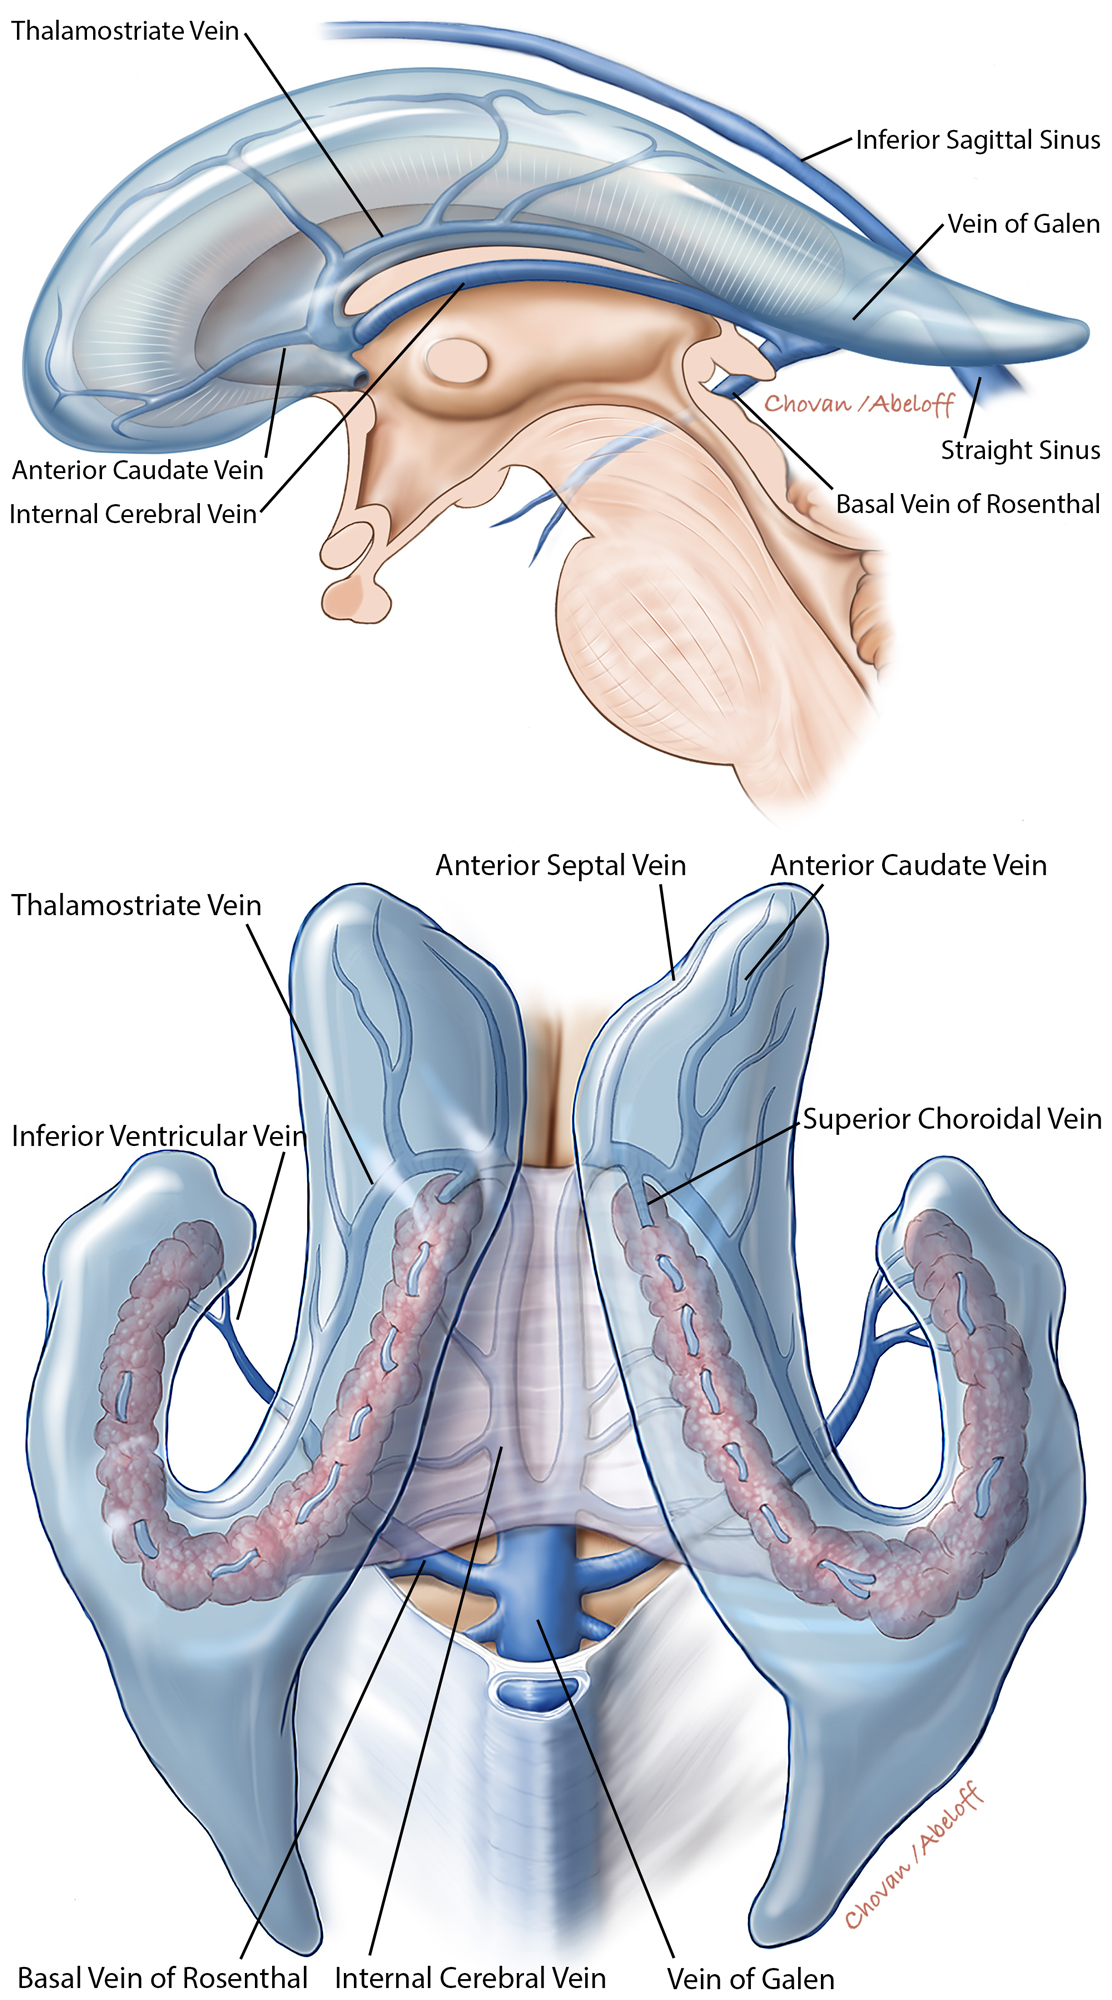 Figure 6: The ventricular venous anatomy is further illustrated in the above illustrations (sagittal, top, and superior, bottom, views). The veins especially associated with operative procedures are marked.